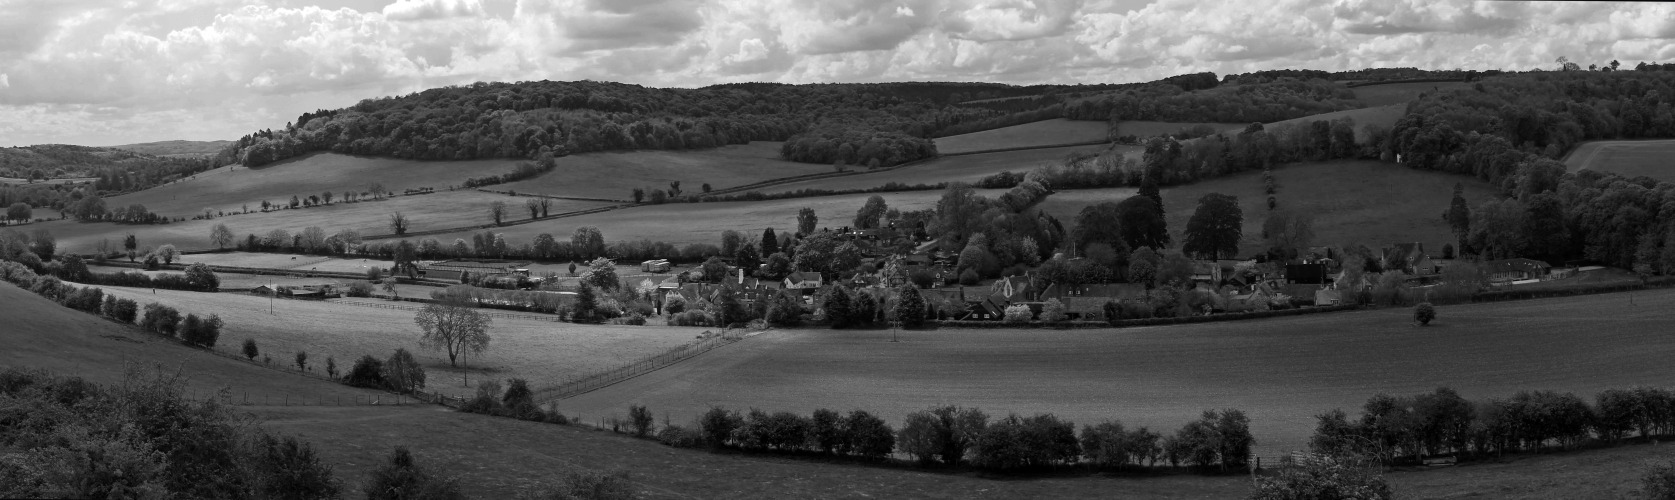 Idyllic on Flickr. A panorama of the village of Turville and the Hambleden Valley. Thanks for the likes and especially those who have commented on the photos I've posted in the last couple of days. Appreciate the kind thoughts.